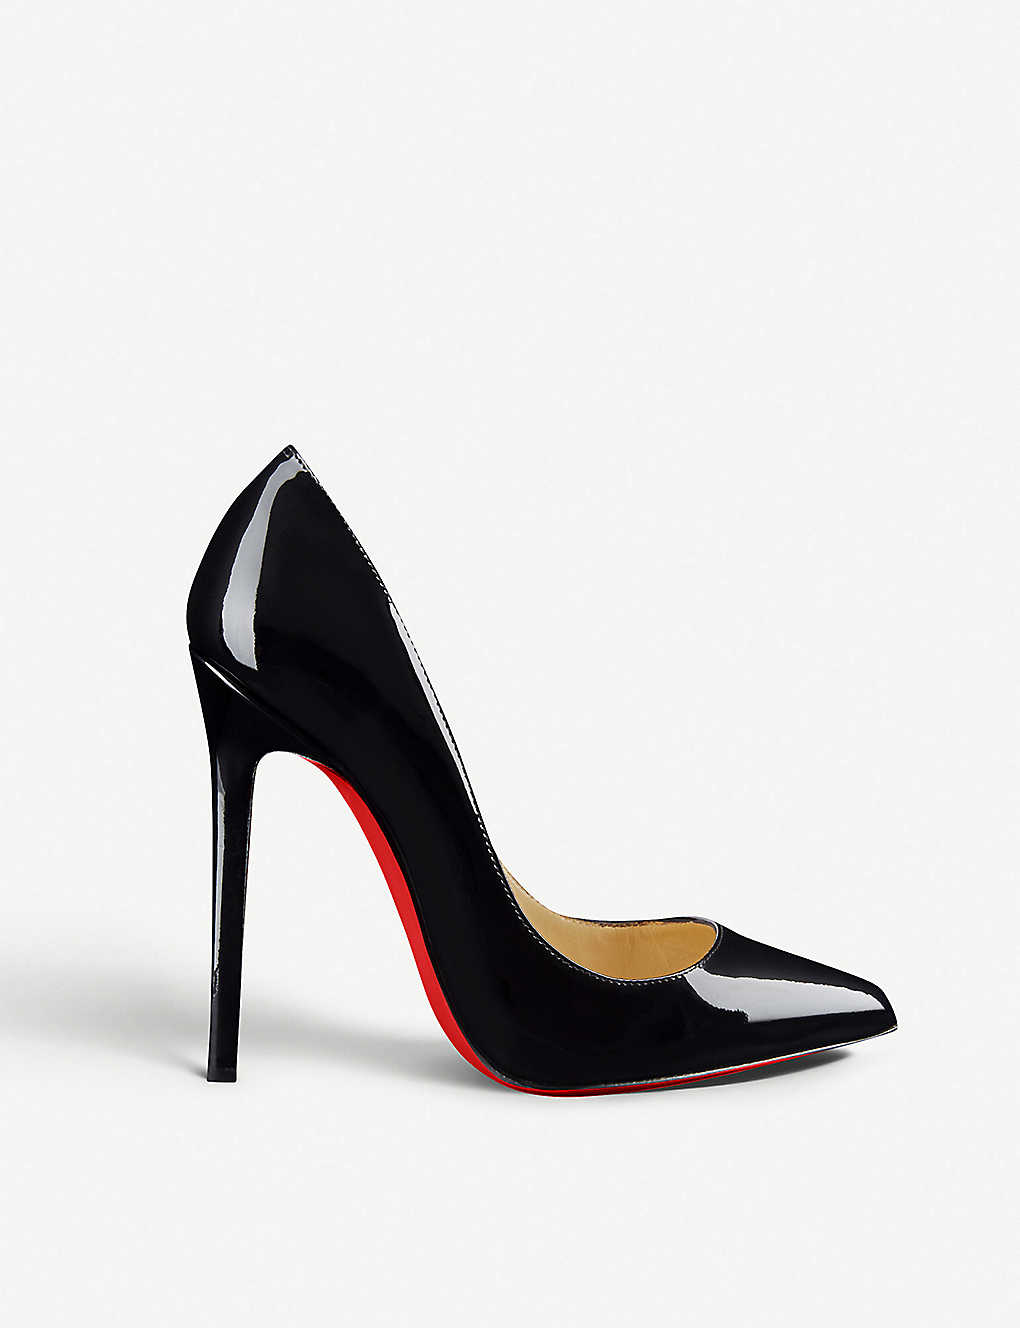 Christian Louboutin Shoes Uk Stores